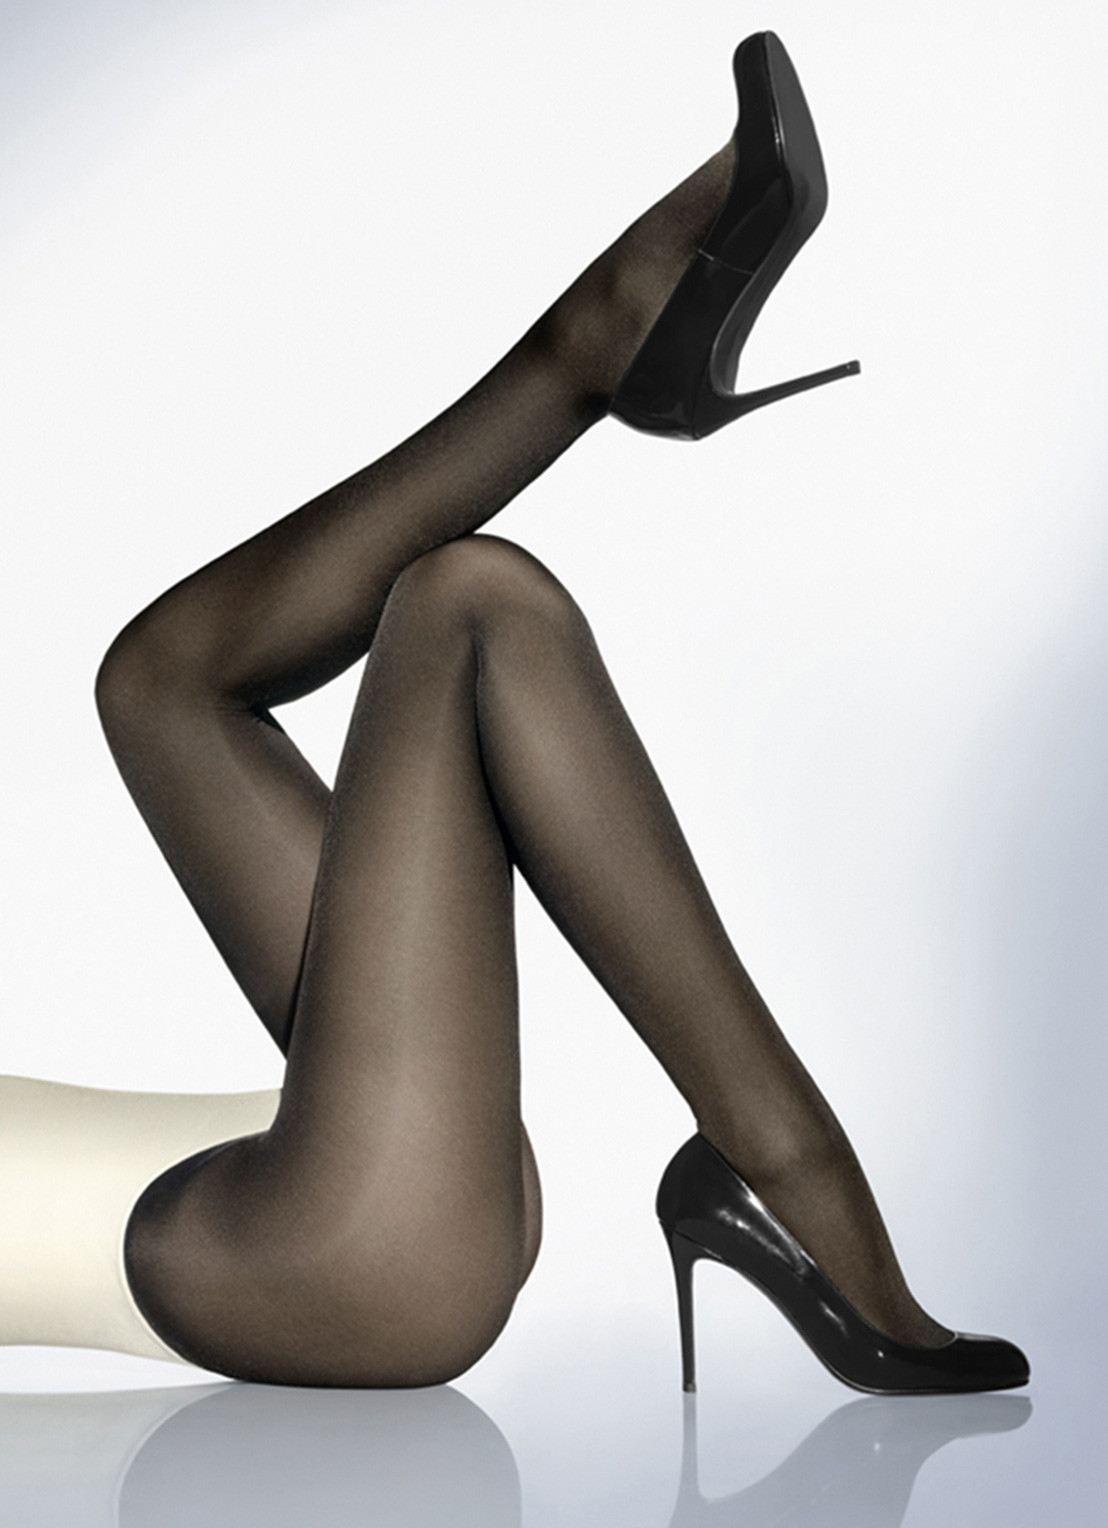 Wolford Satin Opaque panty in 50 denier